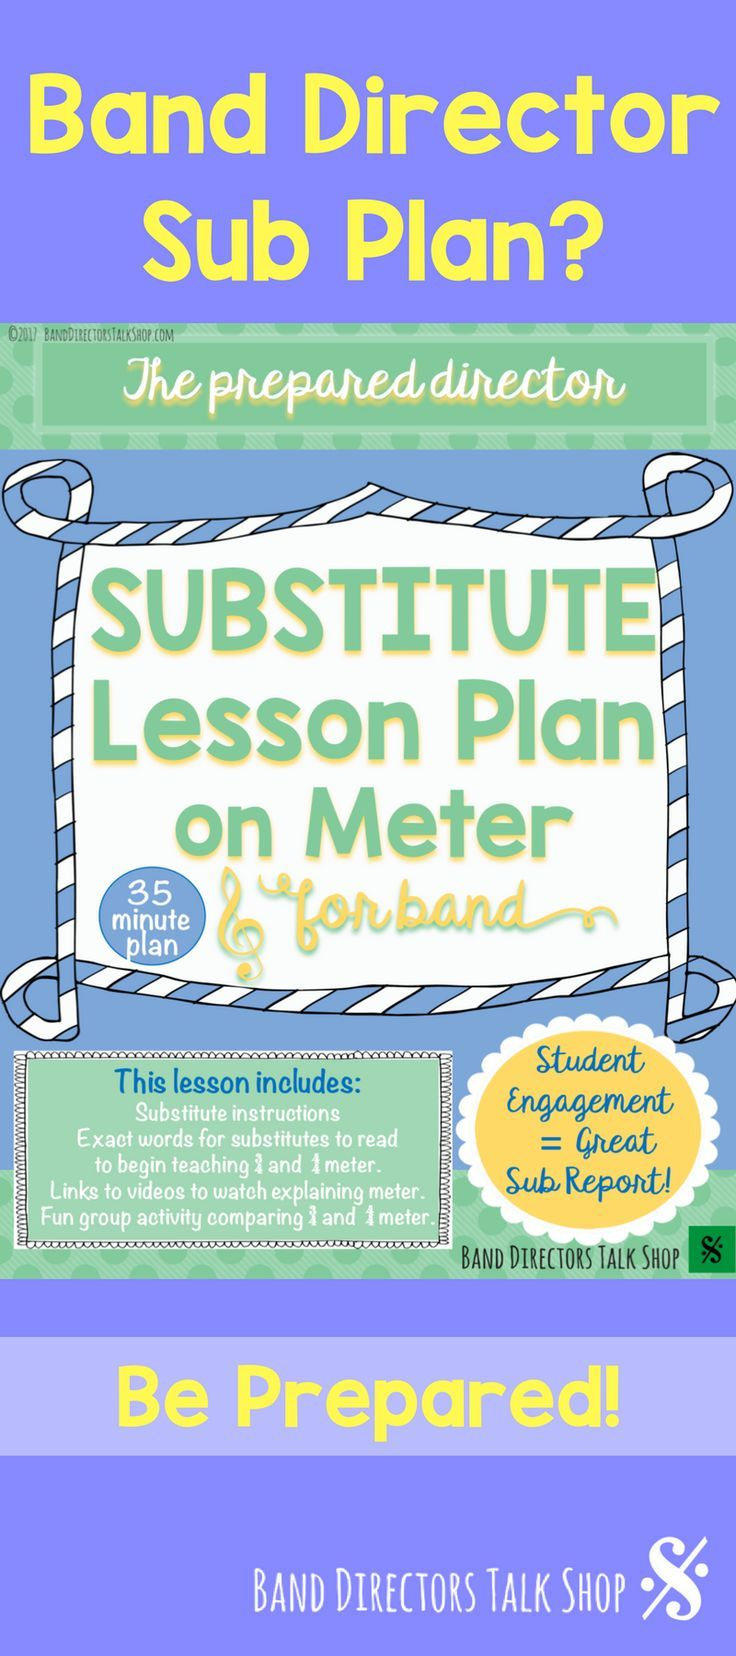 "$4 Band director substitute lesson plan on meter! Visit ""Band Directors Talk Shop"" on Teachers Pay Teachers for band lesson plans, band games, band activities, beginning band ideas, band bulletin board sets, rhythm games, note name games, music word walls, practice reports, rehearsal techniques, woodwind, brass and percussion instrument care, band teaching strategies, motivational quotes and more!"